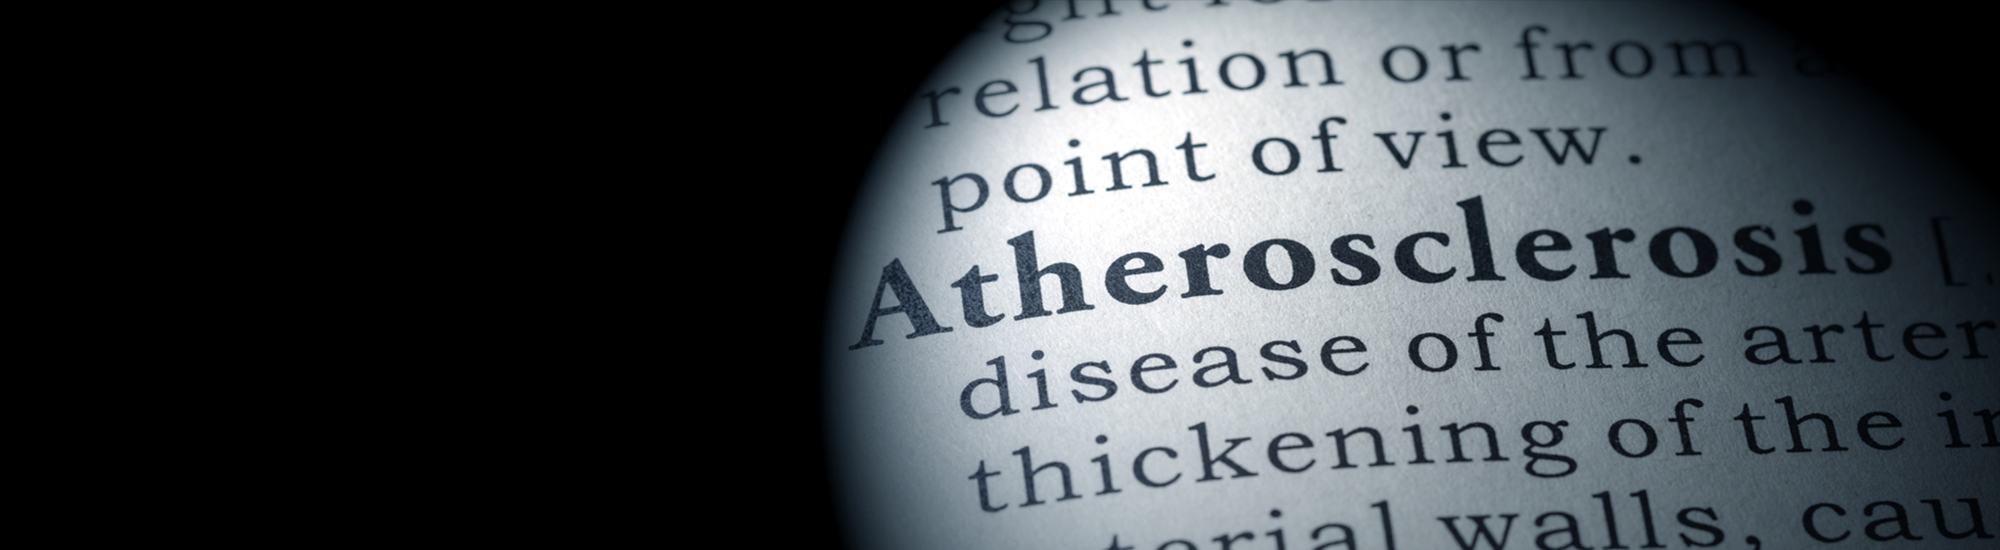 Ayurvedic treatment for Atherosclerosis